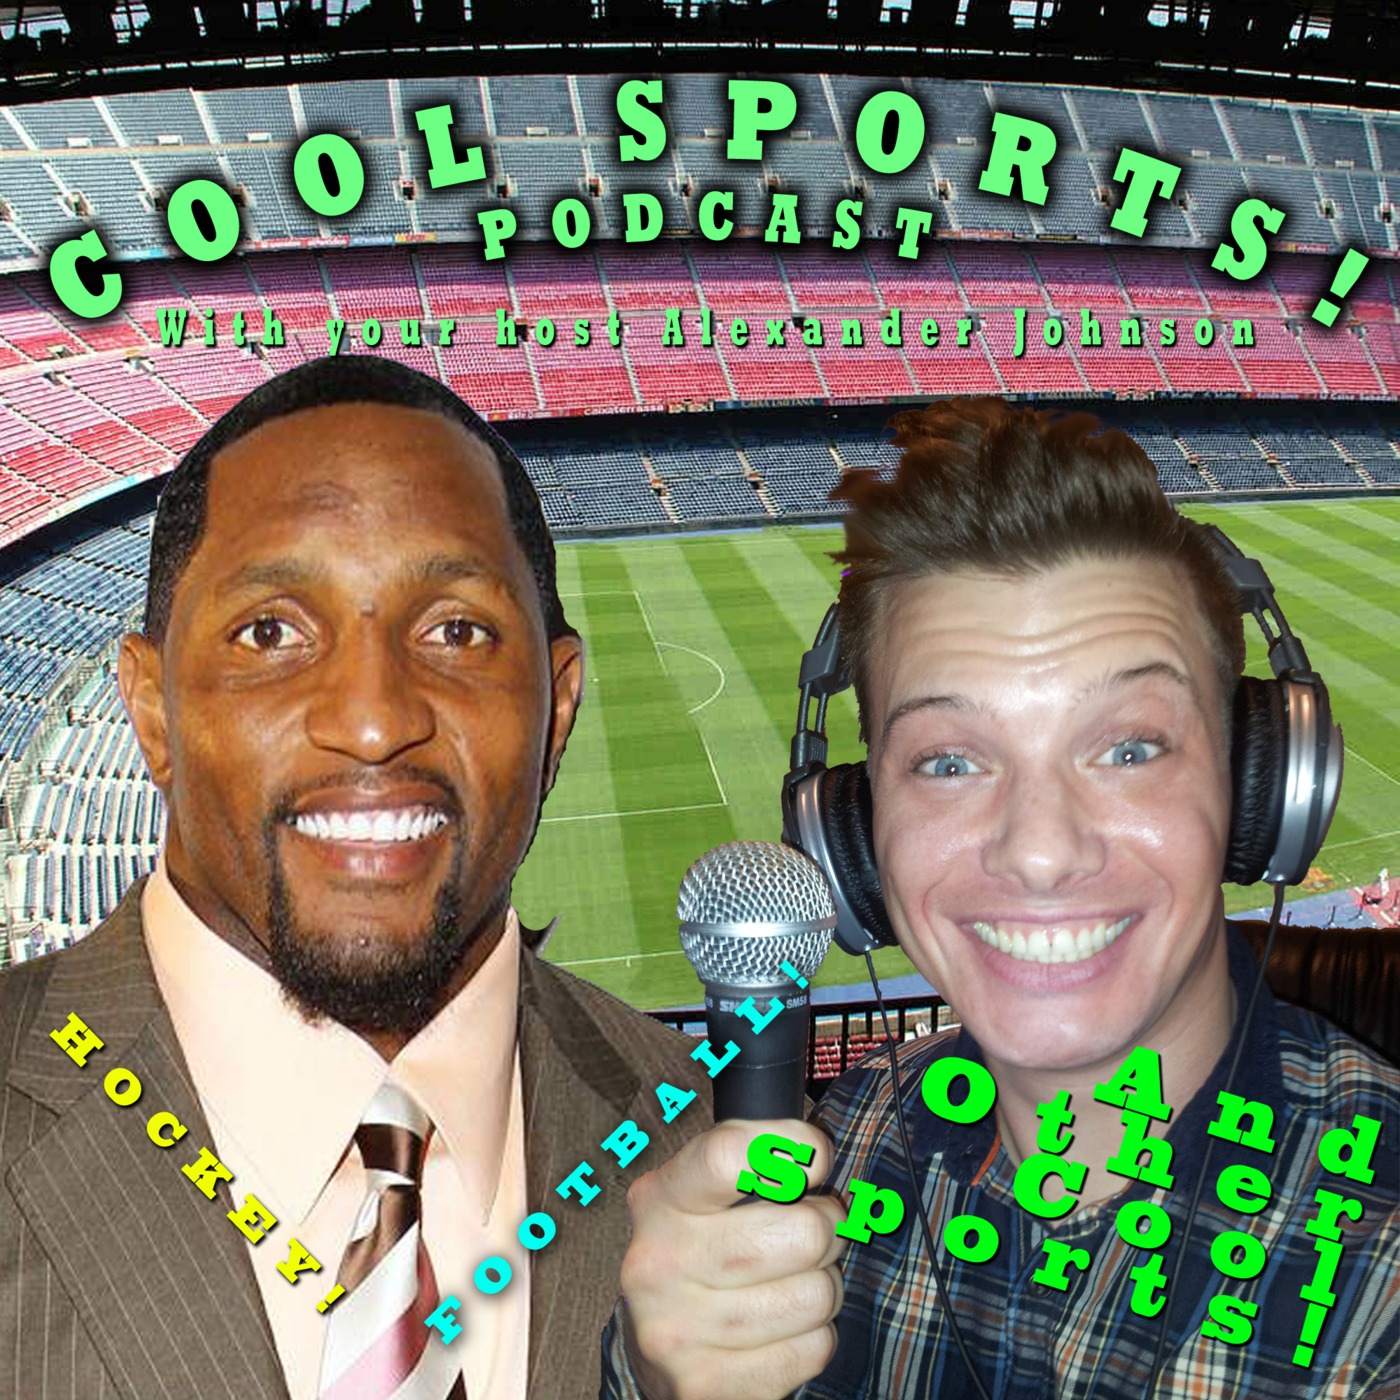 Cool Sports! Podcast